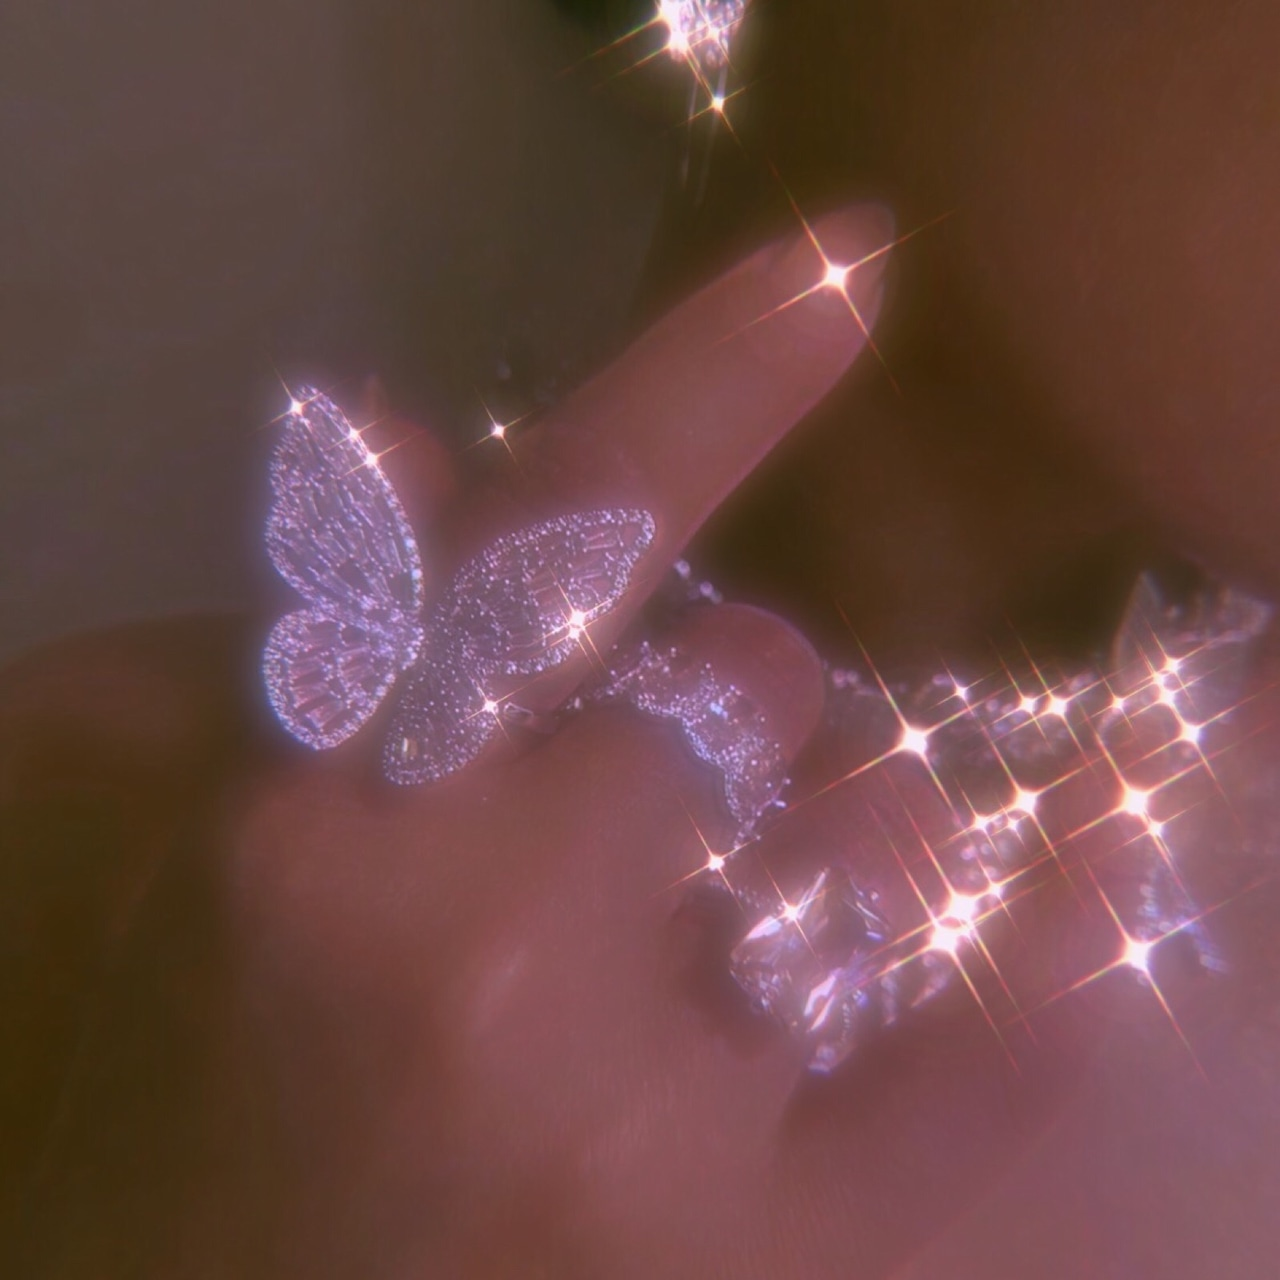 29 Images About Butterfly On We Heart It See More About Butterfly Aesthetic And Blue